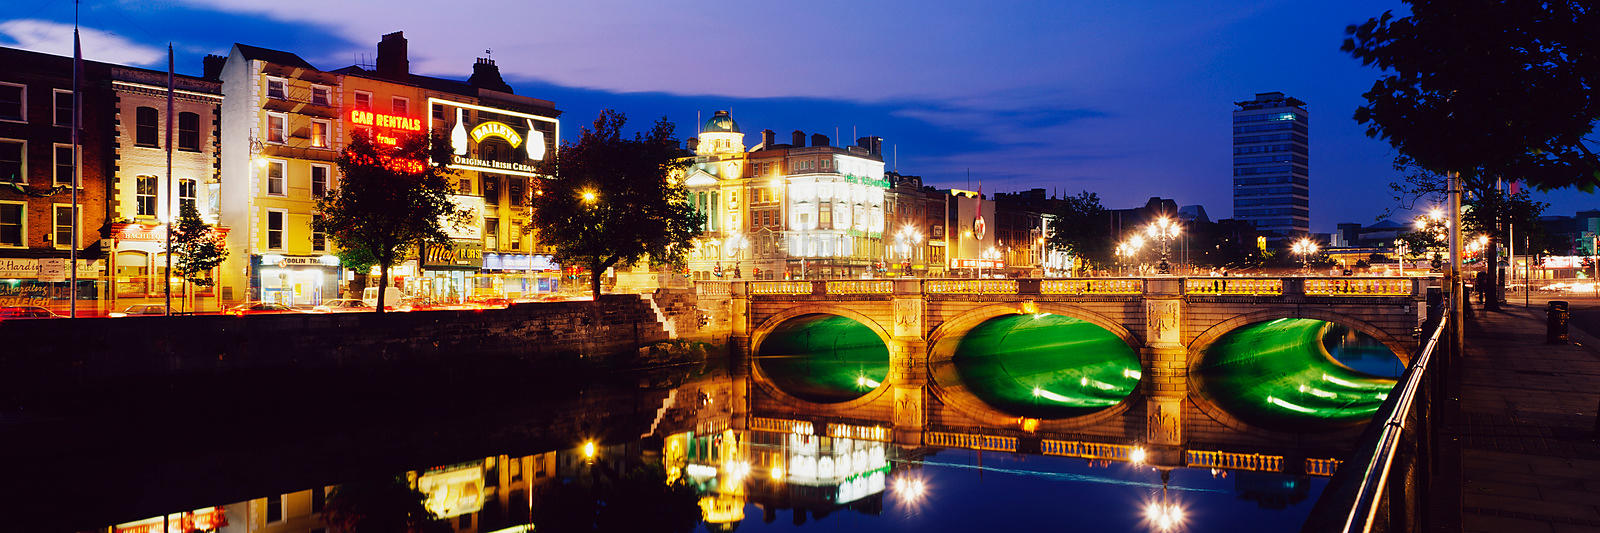 O'Connell Street and River Liffey at Dusk